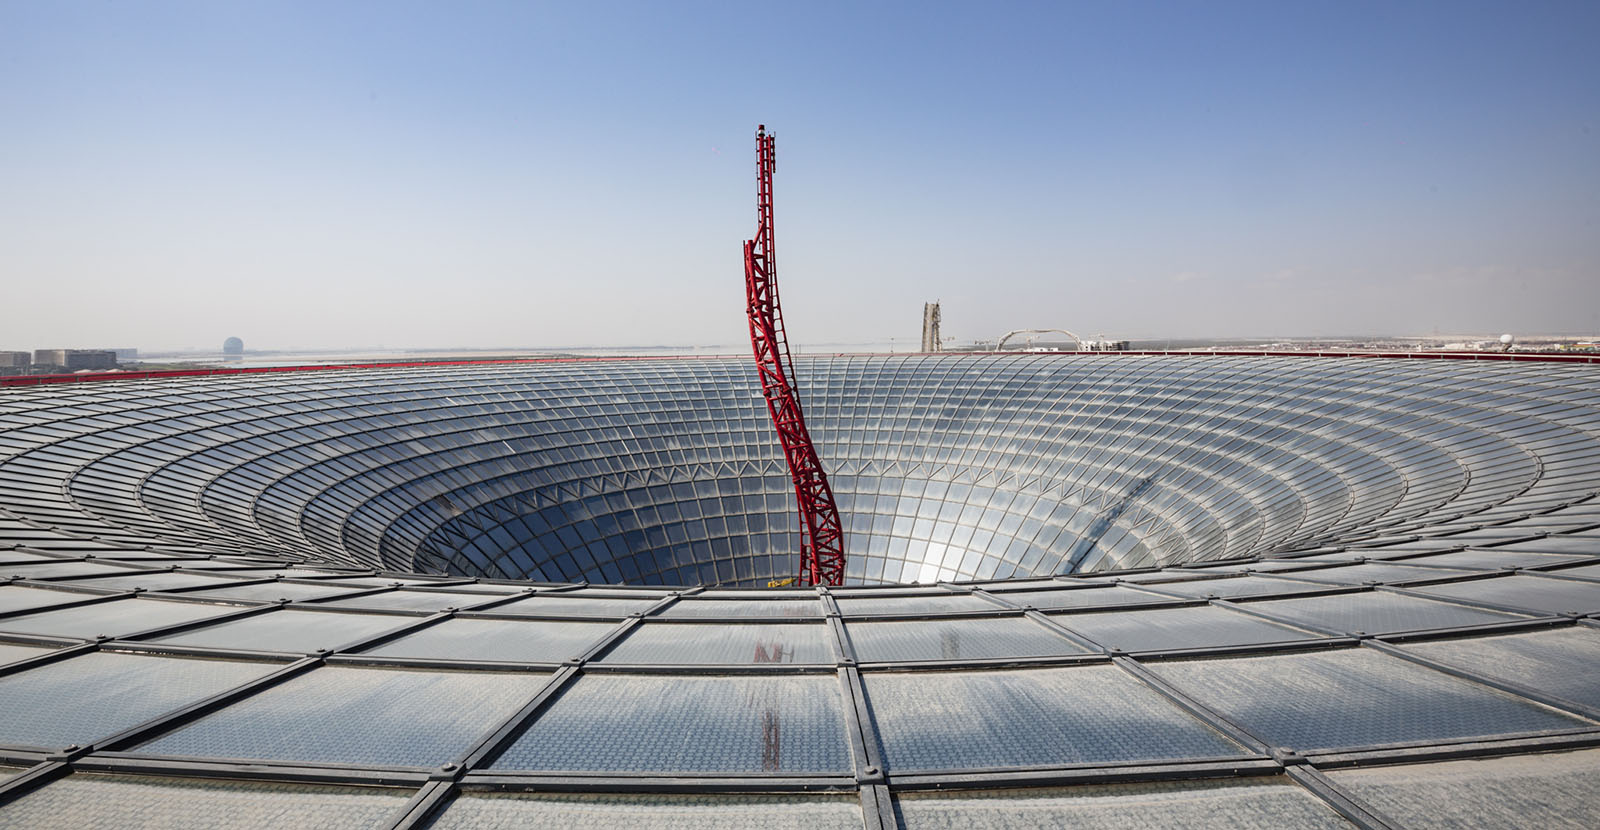 ferrari world abu dhabi new expansions page 15 forums. Cars Review. Best American Auto & Cars Review